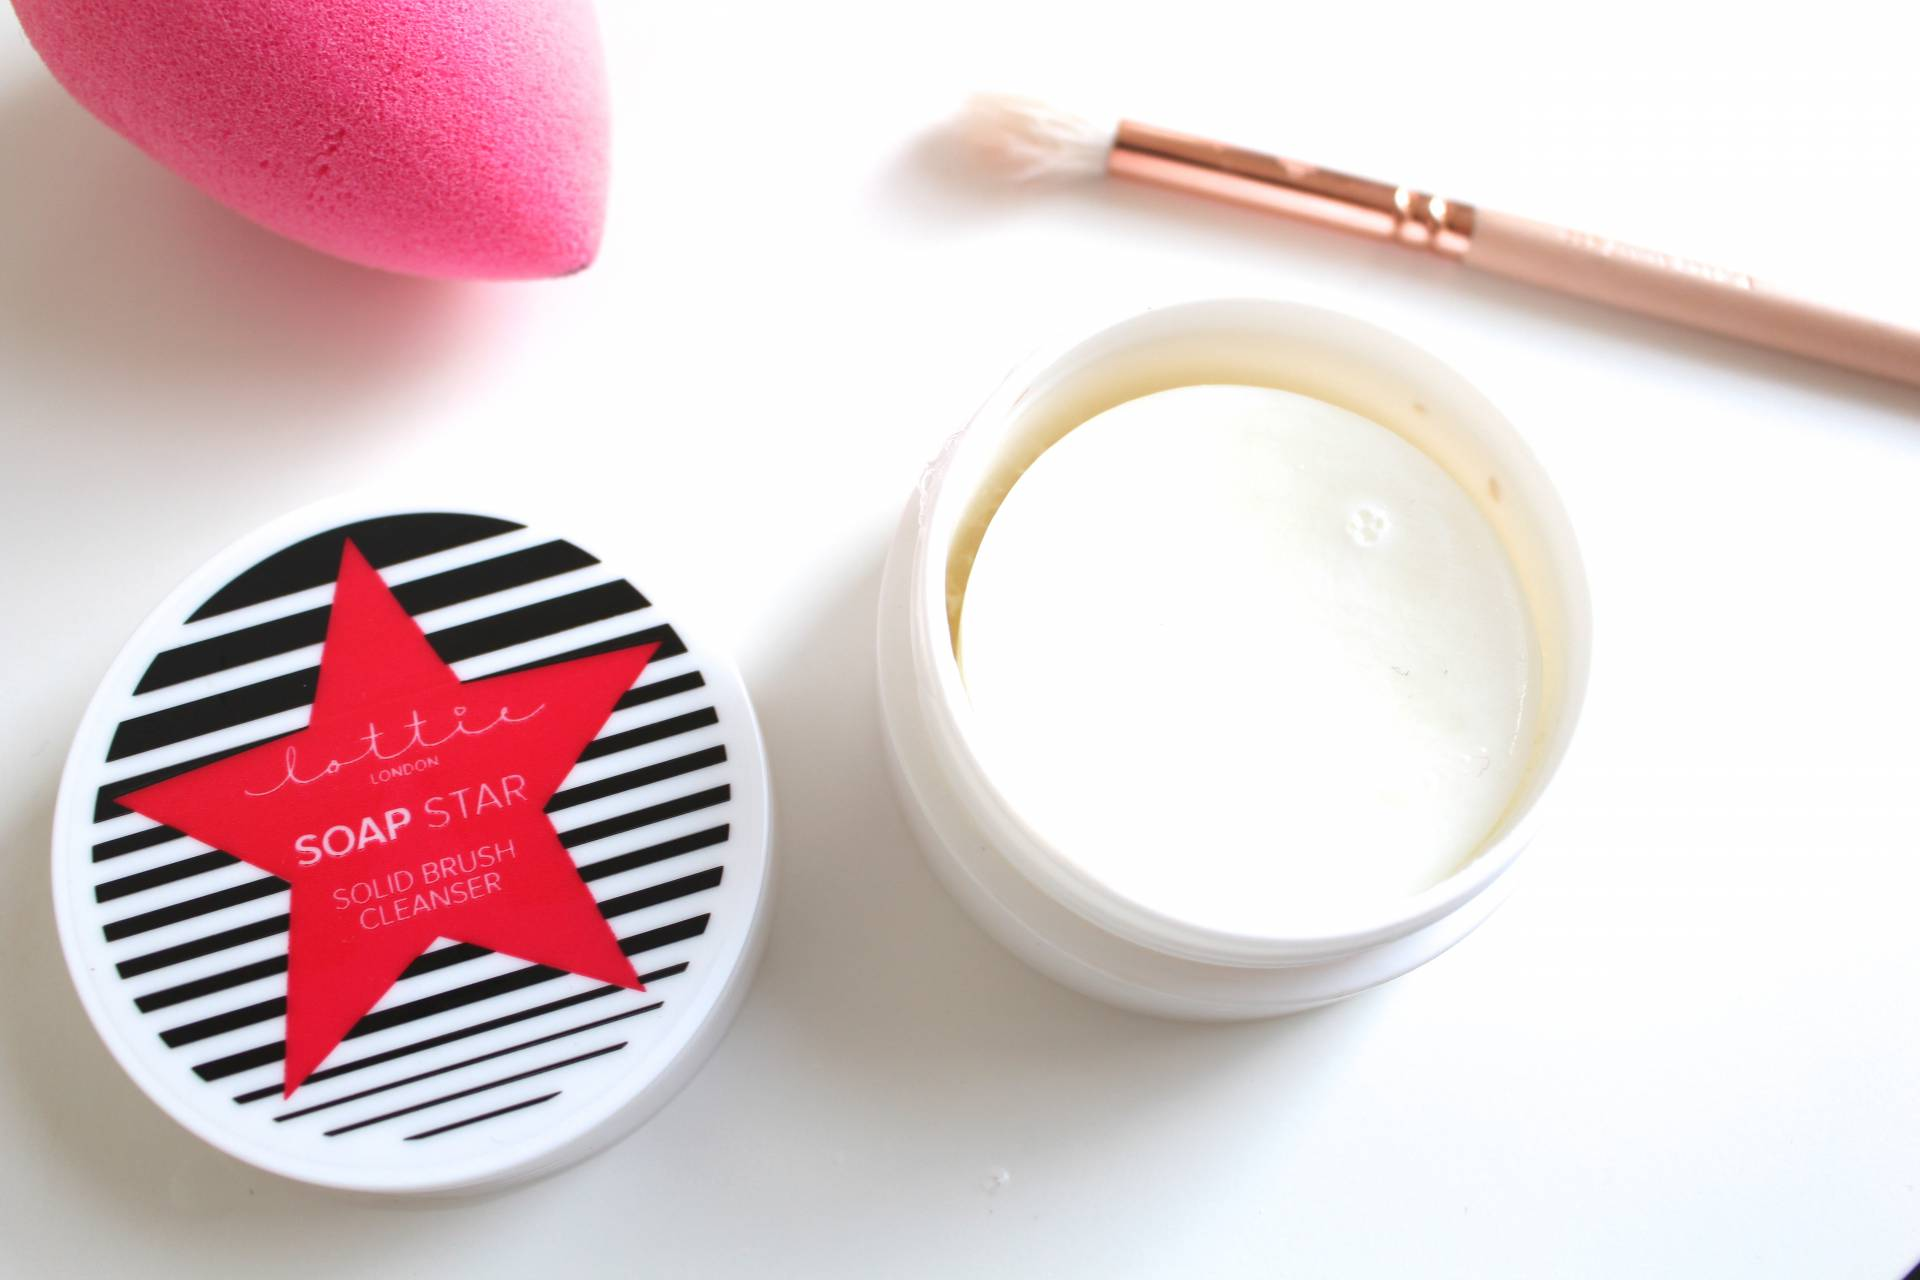 Amy Farquhar Solid Brush Cleanser